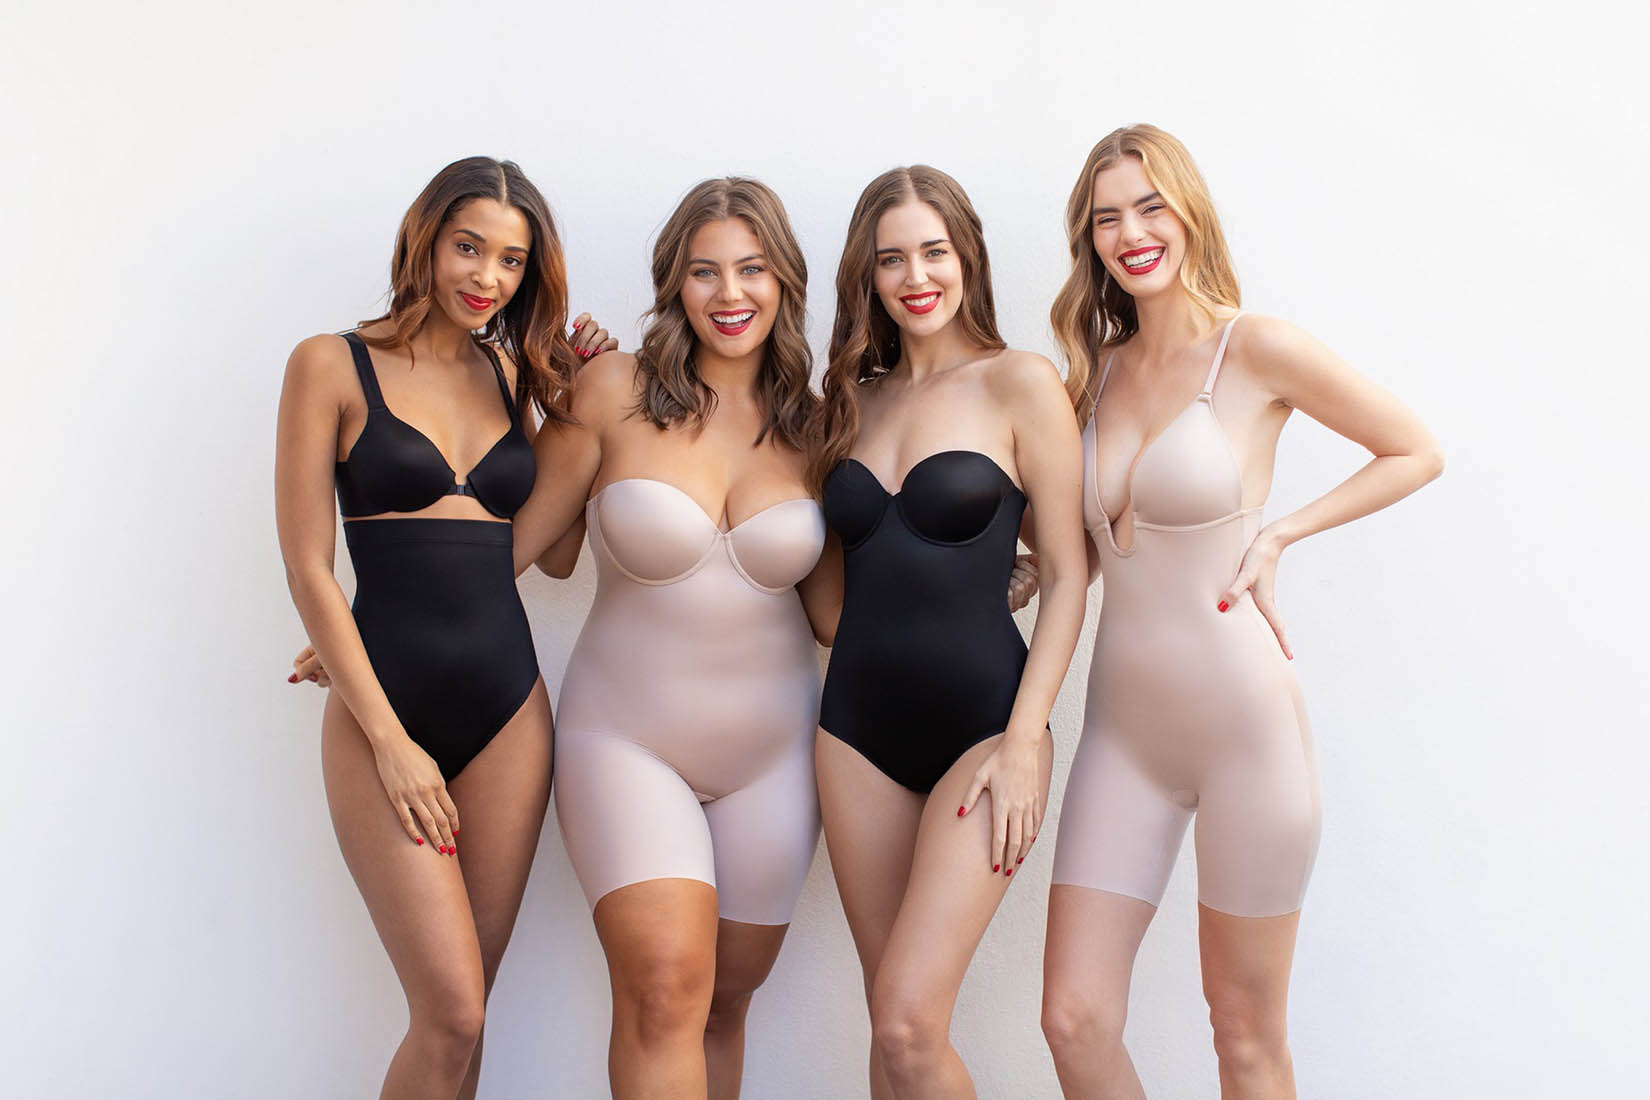 best lingerie brands Spanx review Luxe Digital